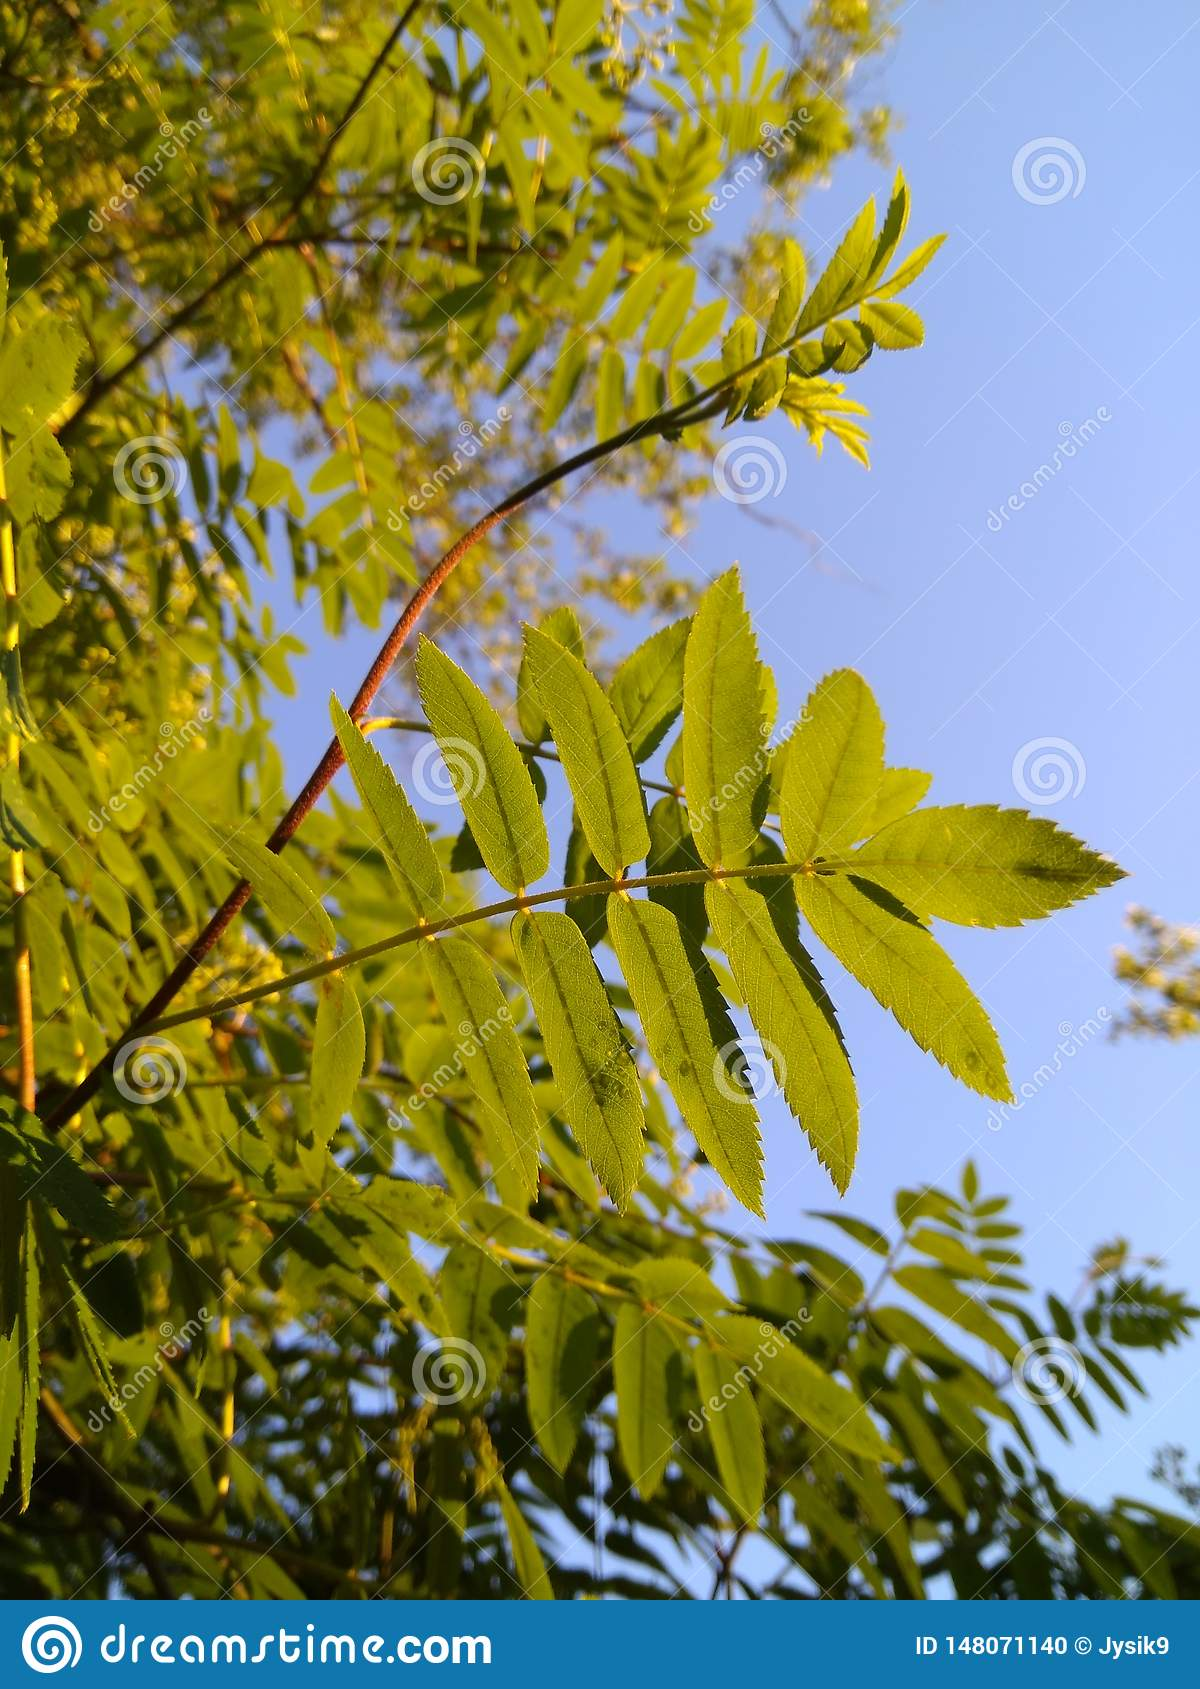 Green young leaves of mountain ash on the background of the blue sky in the rays of sunlight